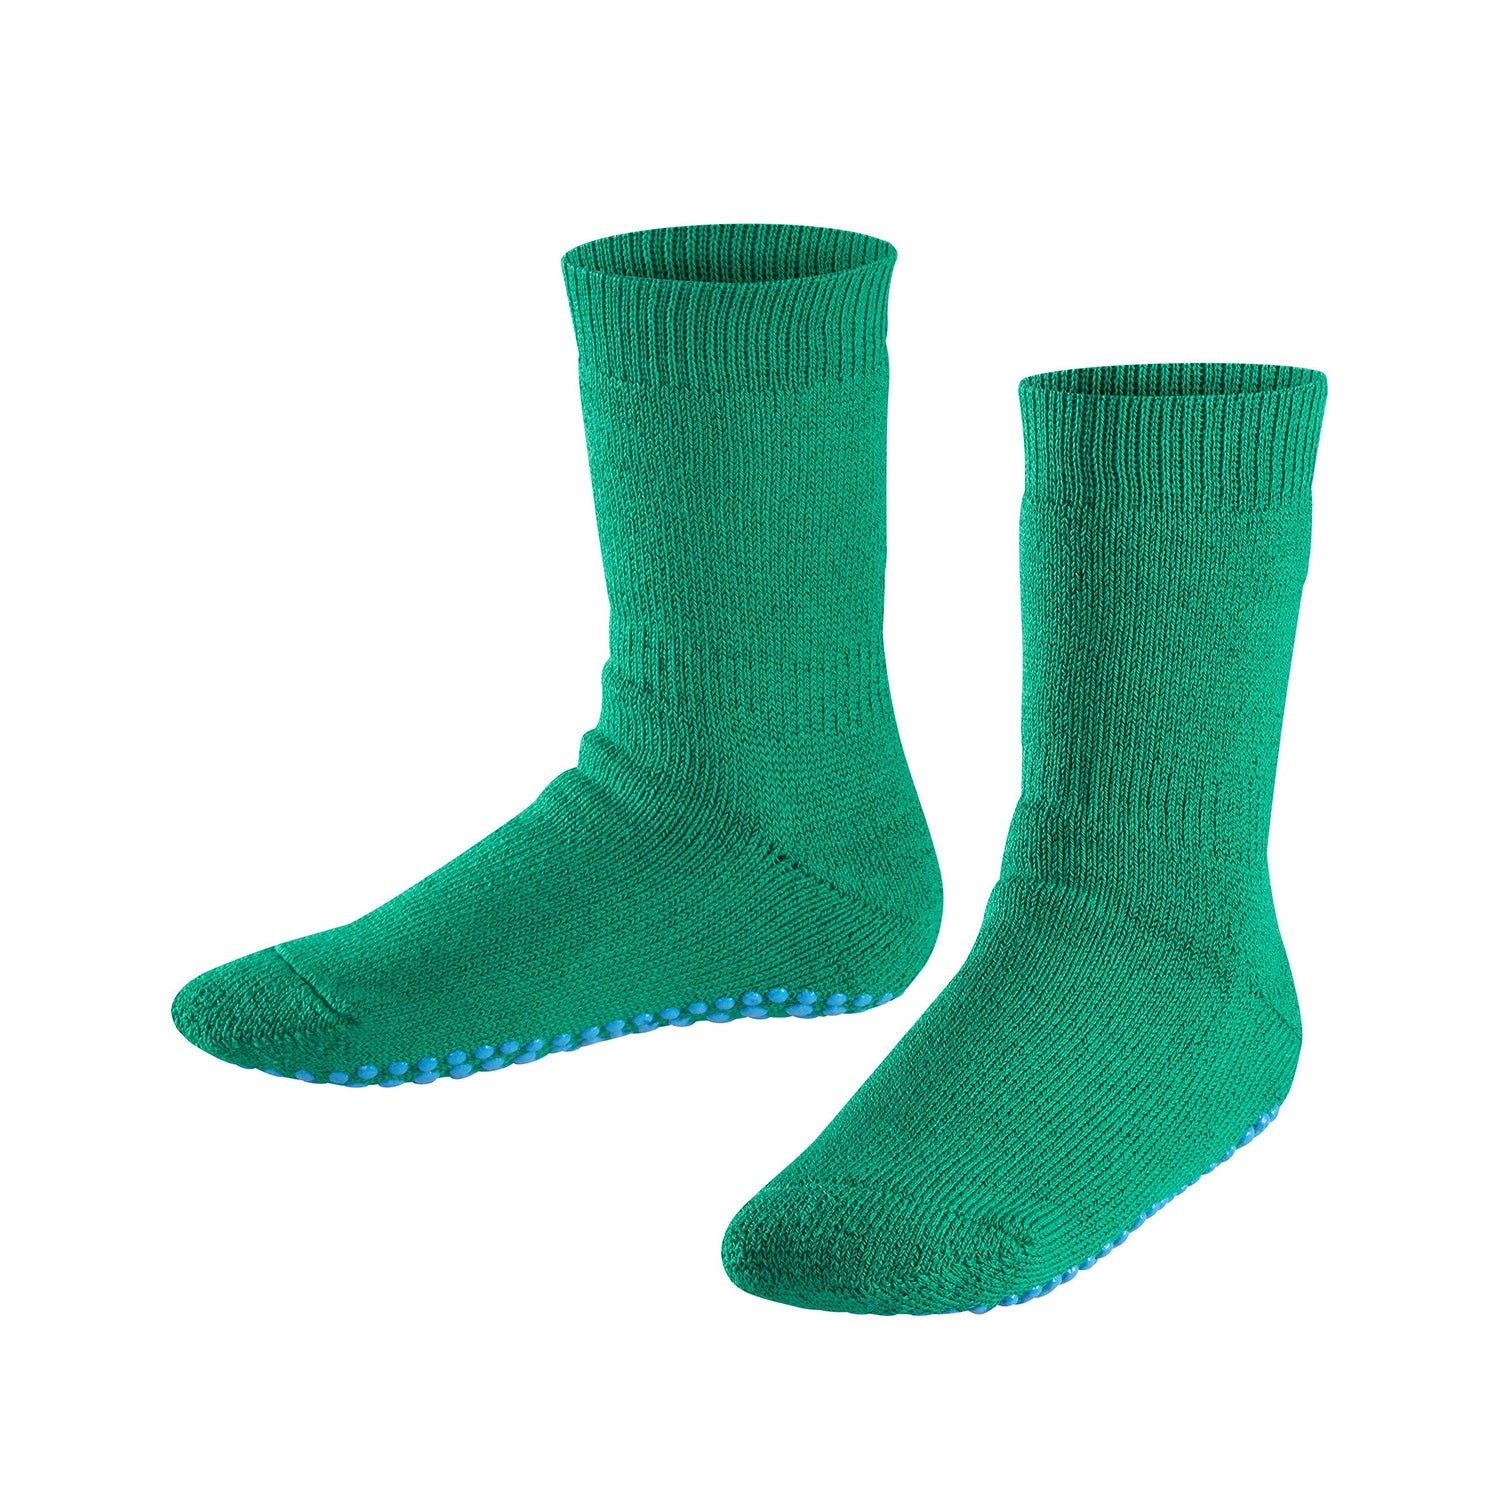 Falke Kids Catspads Slipper Socks - Grass Green